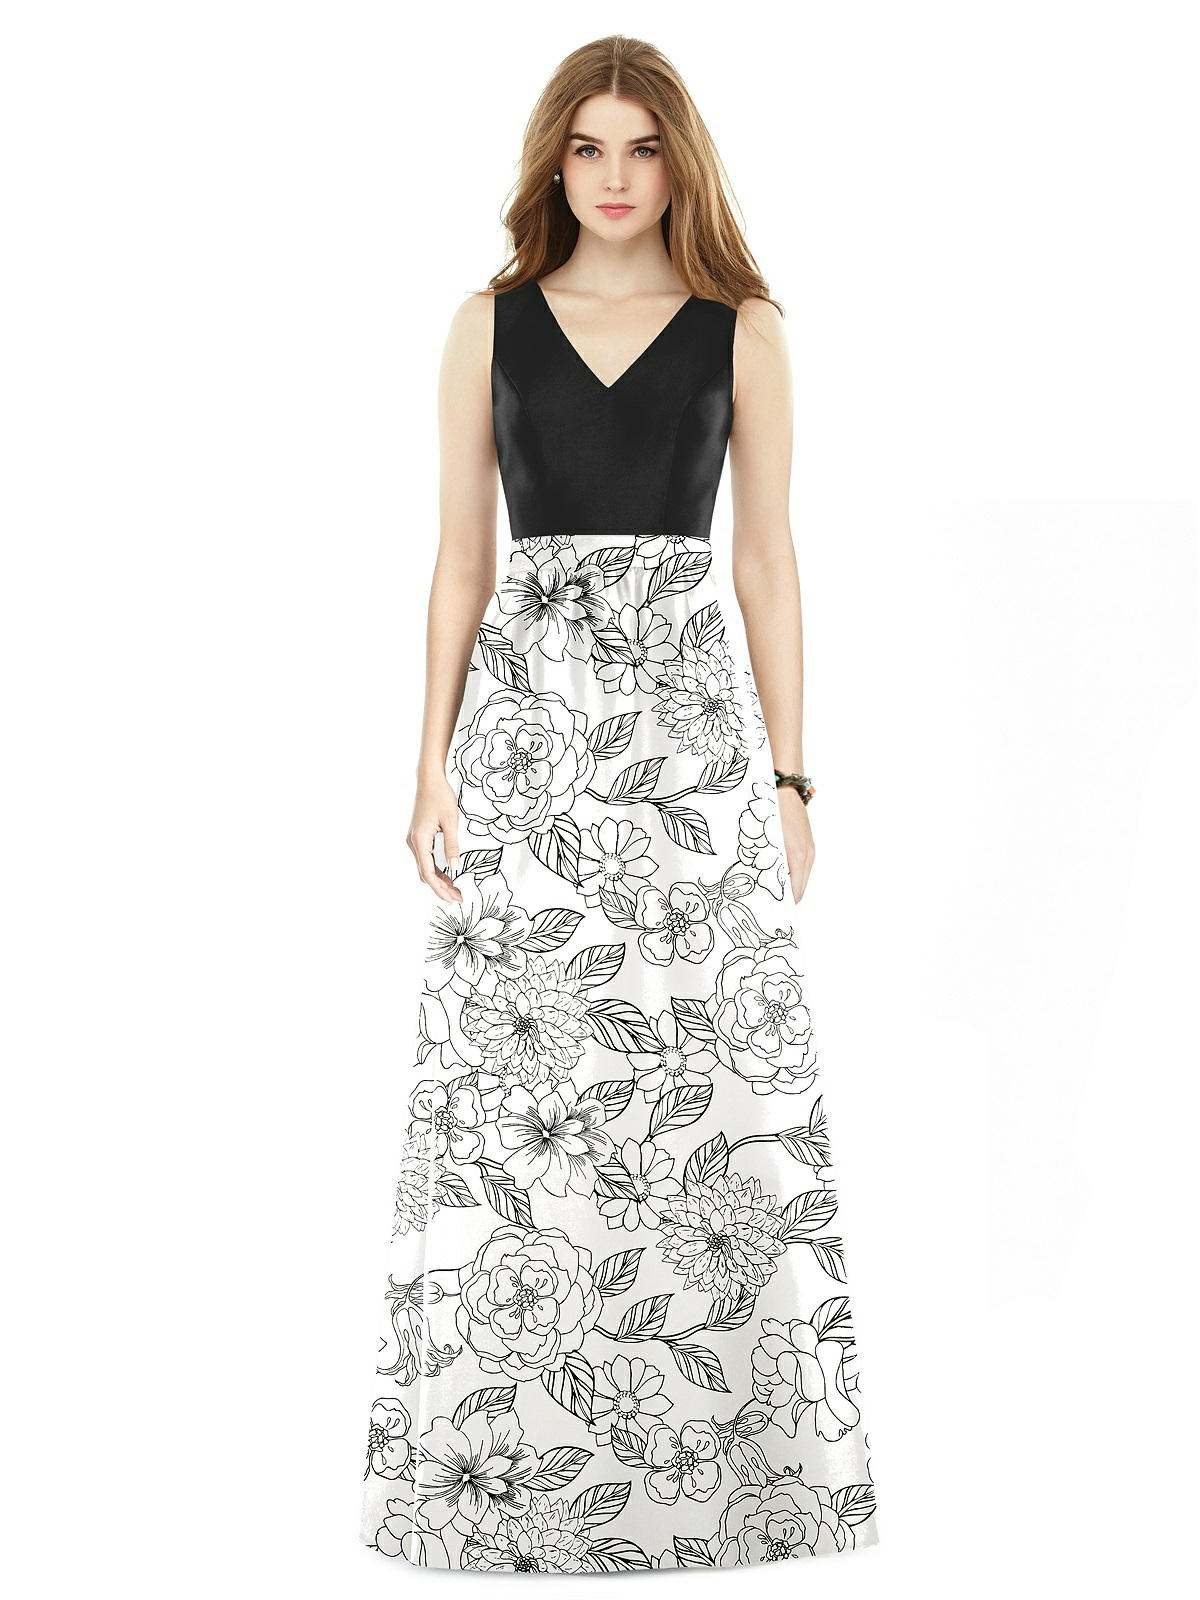 botanica black and white floral bridesmaid dress